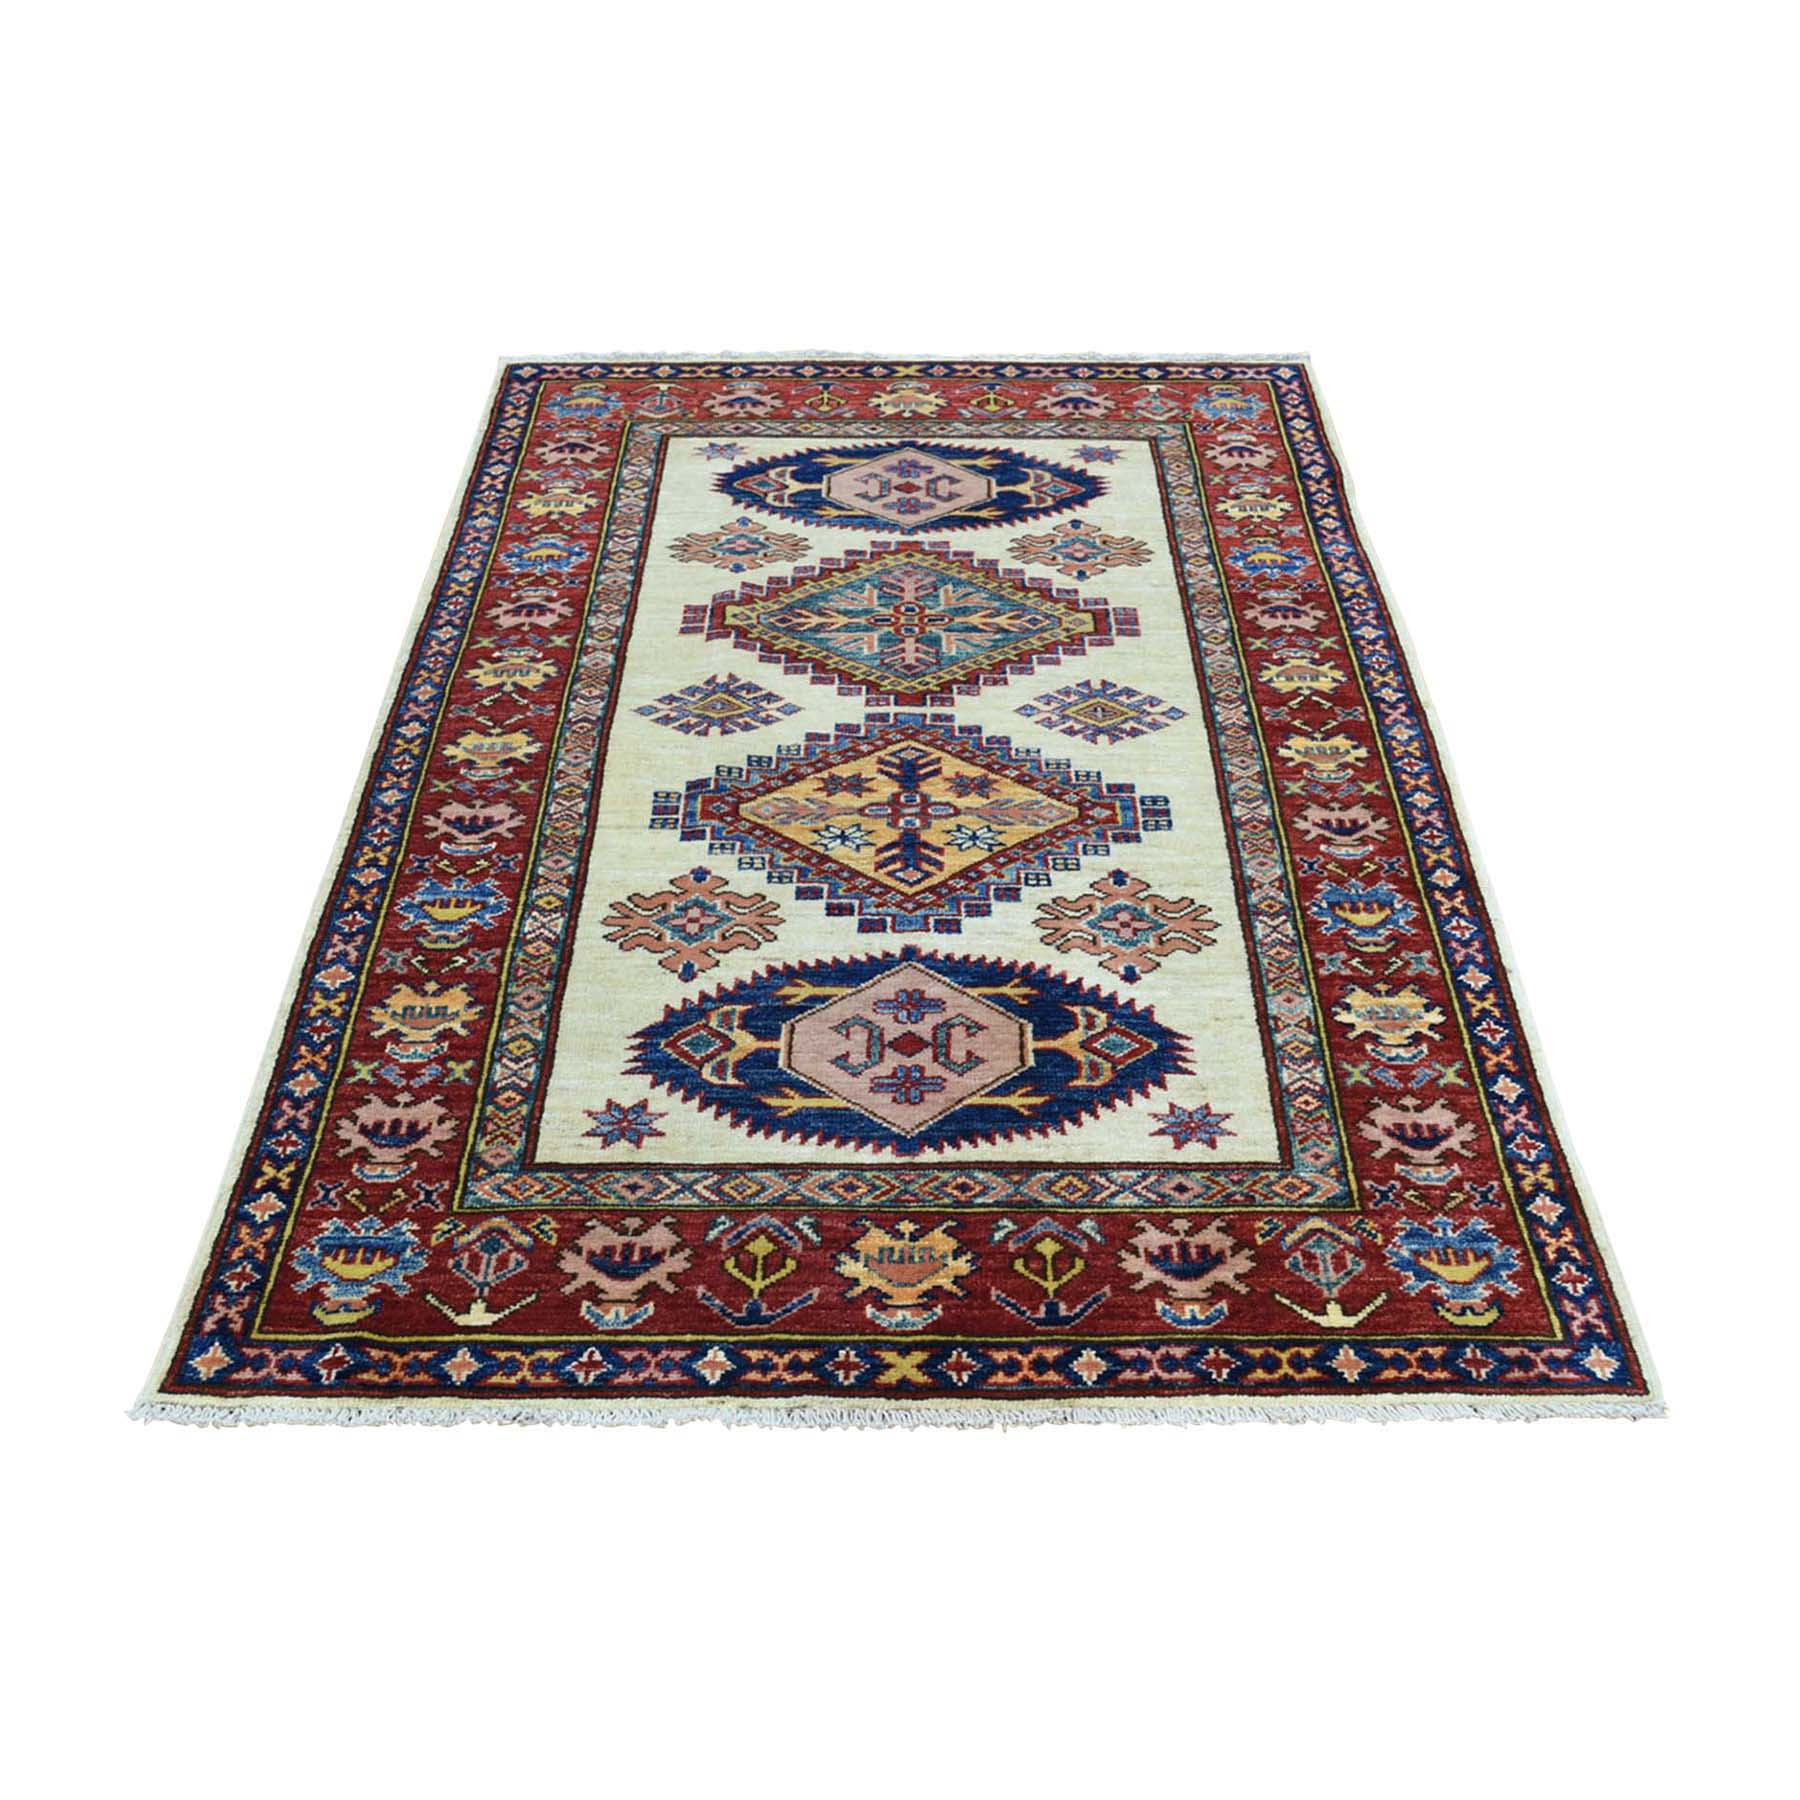 "3'3""X5' Hand-Knotted Pure Wool Super Kazak Tribal Design Oriental Rug moac06e0"